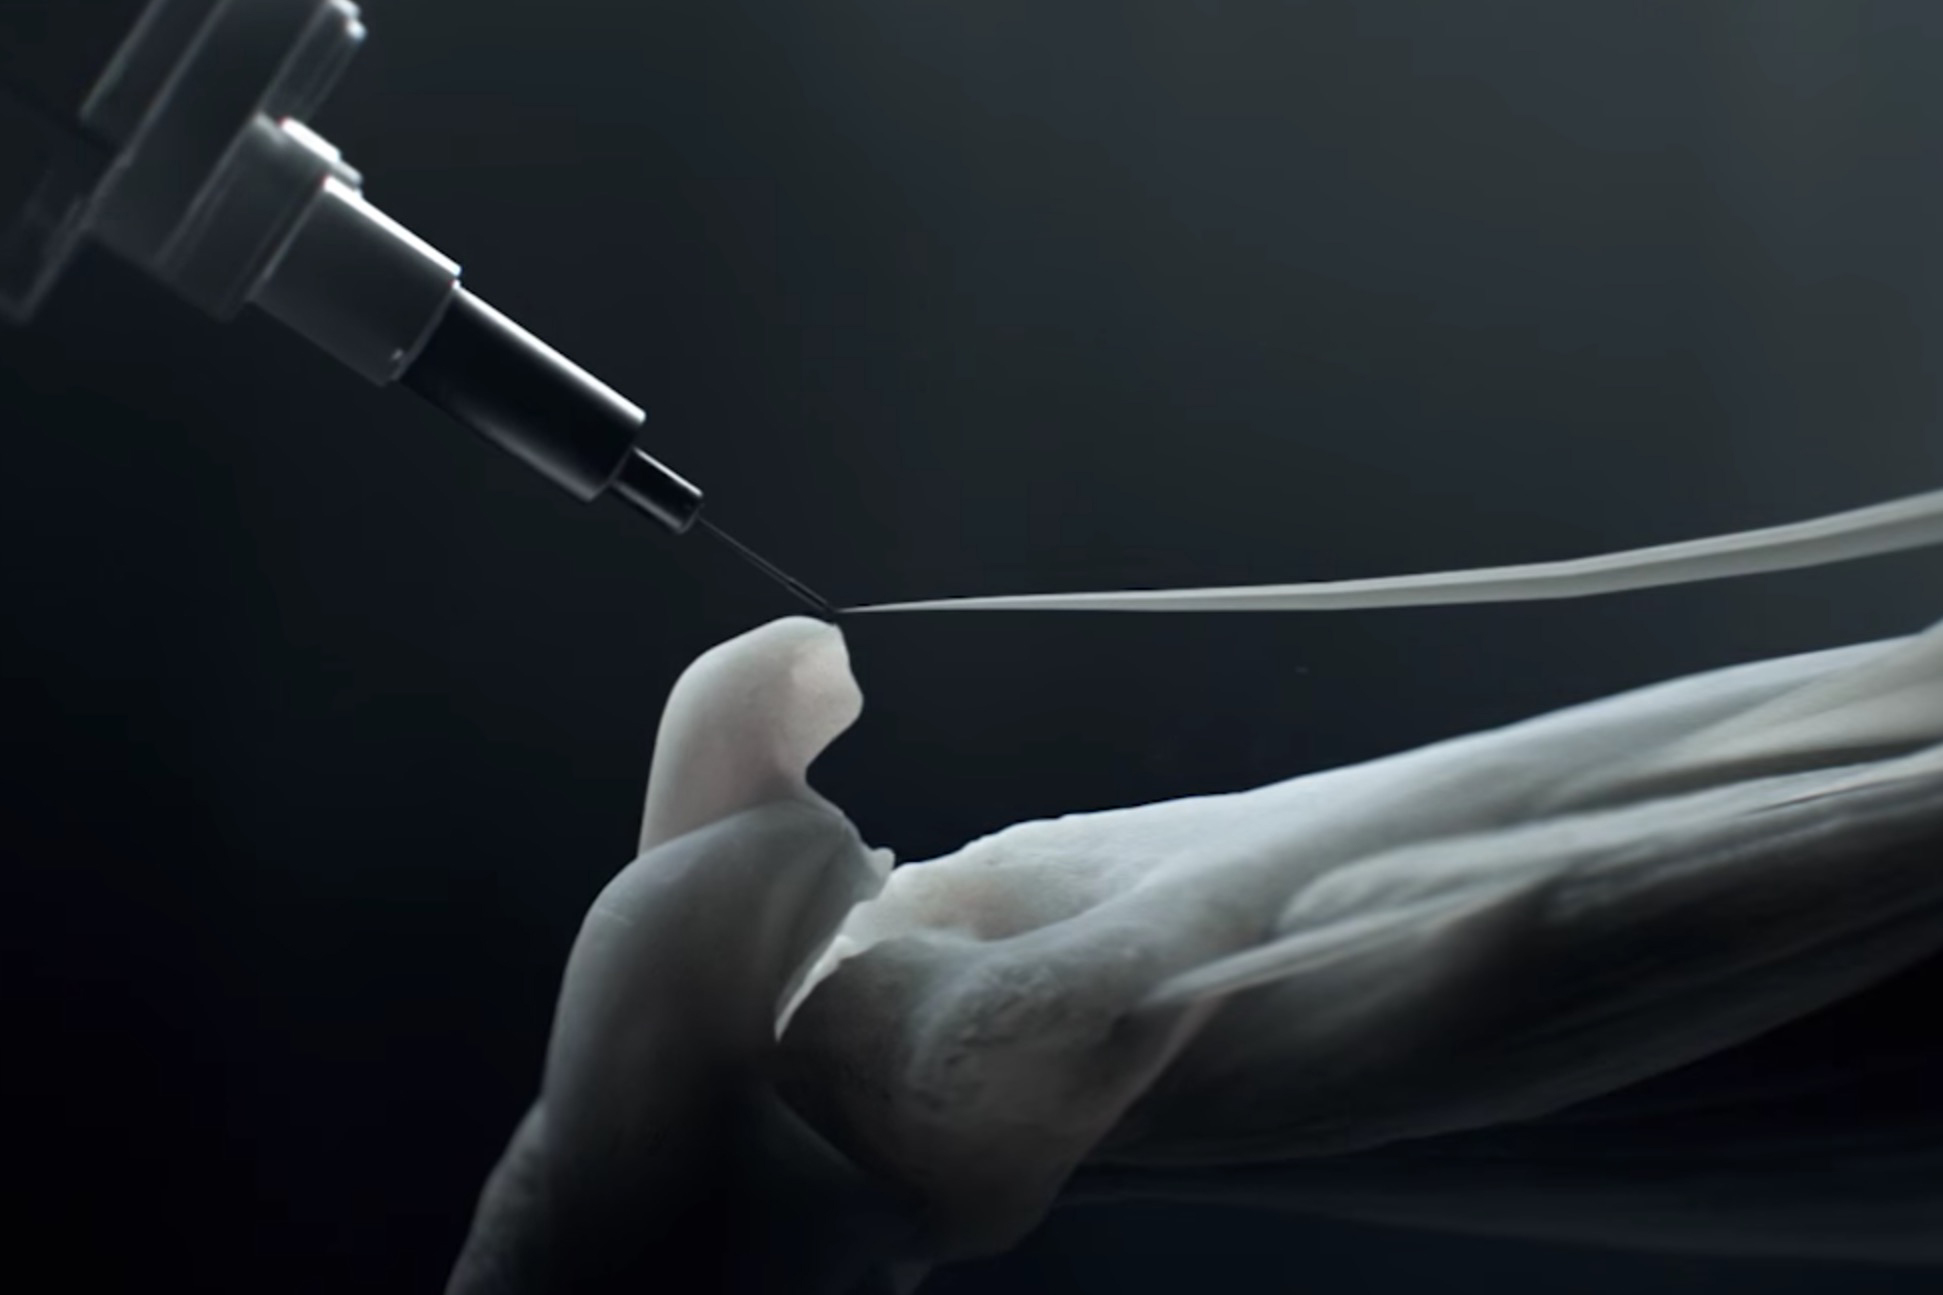 Attaching a 3D printed muscle to a bone segment on HBO's Westworld